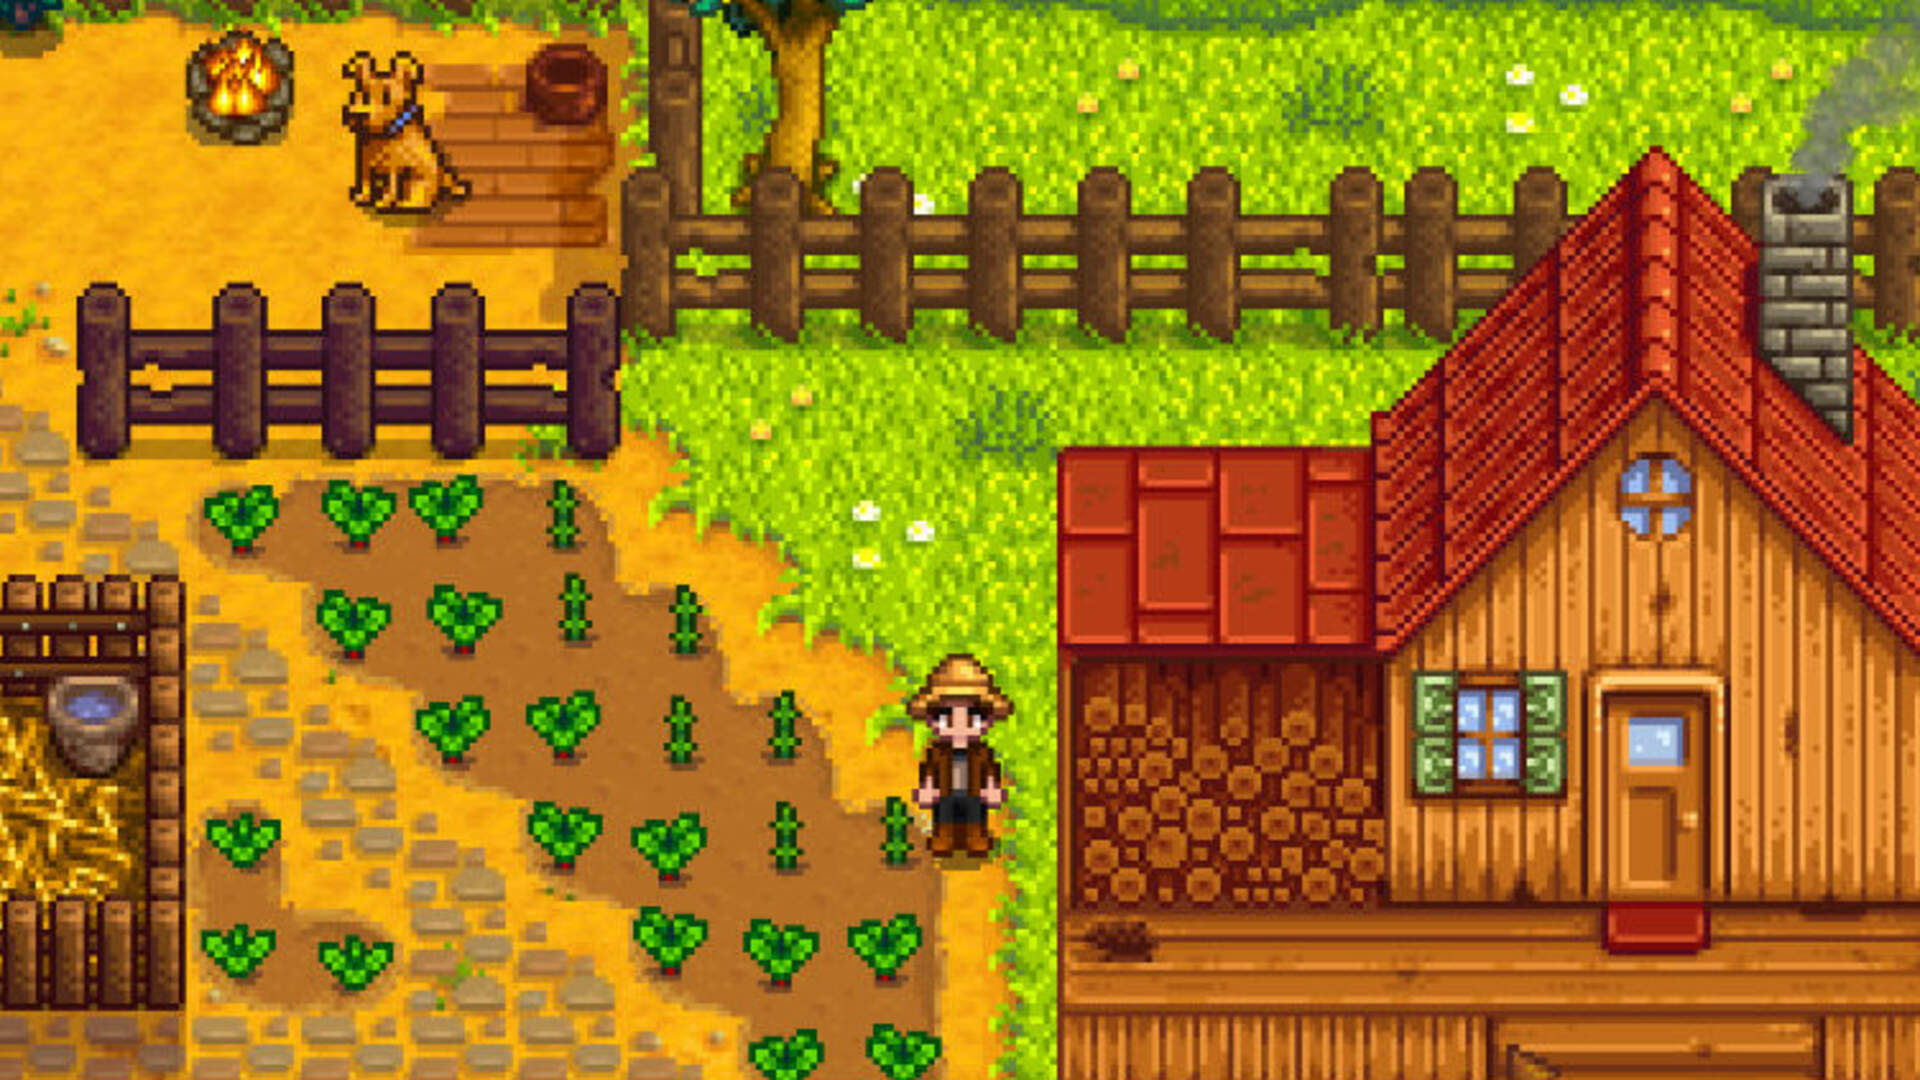 Upcoming Stardew Valley Update Gives Players a Reason to Keep on Farming